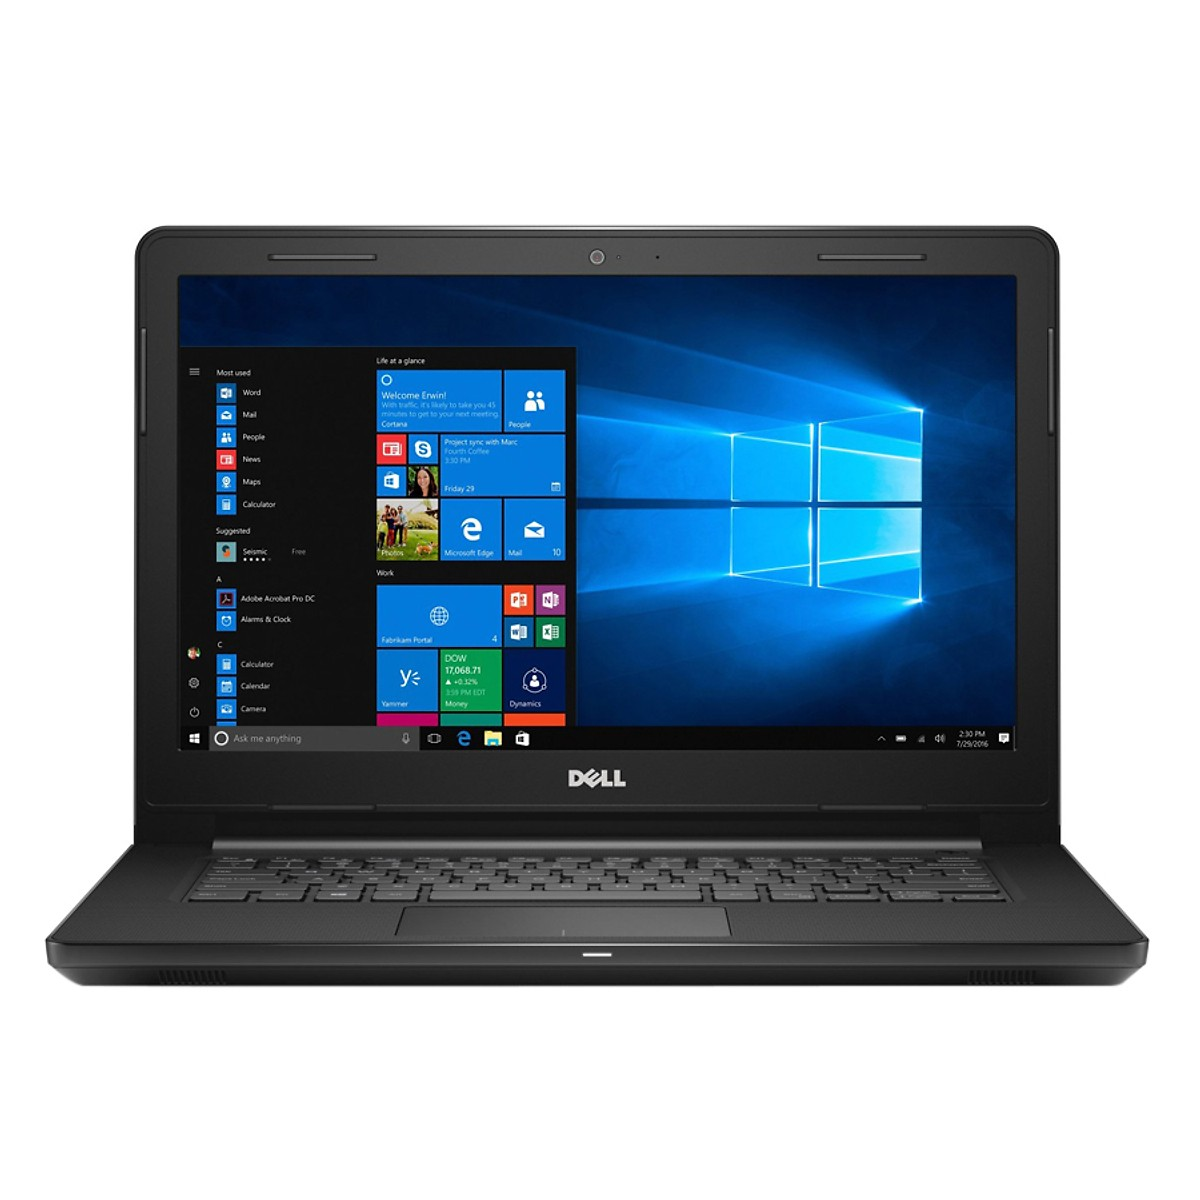 [Mới 100% Full box] Laptop Dell Inspiron 3476 P76G002 - Intel Core i5